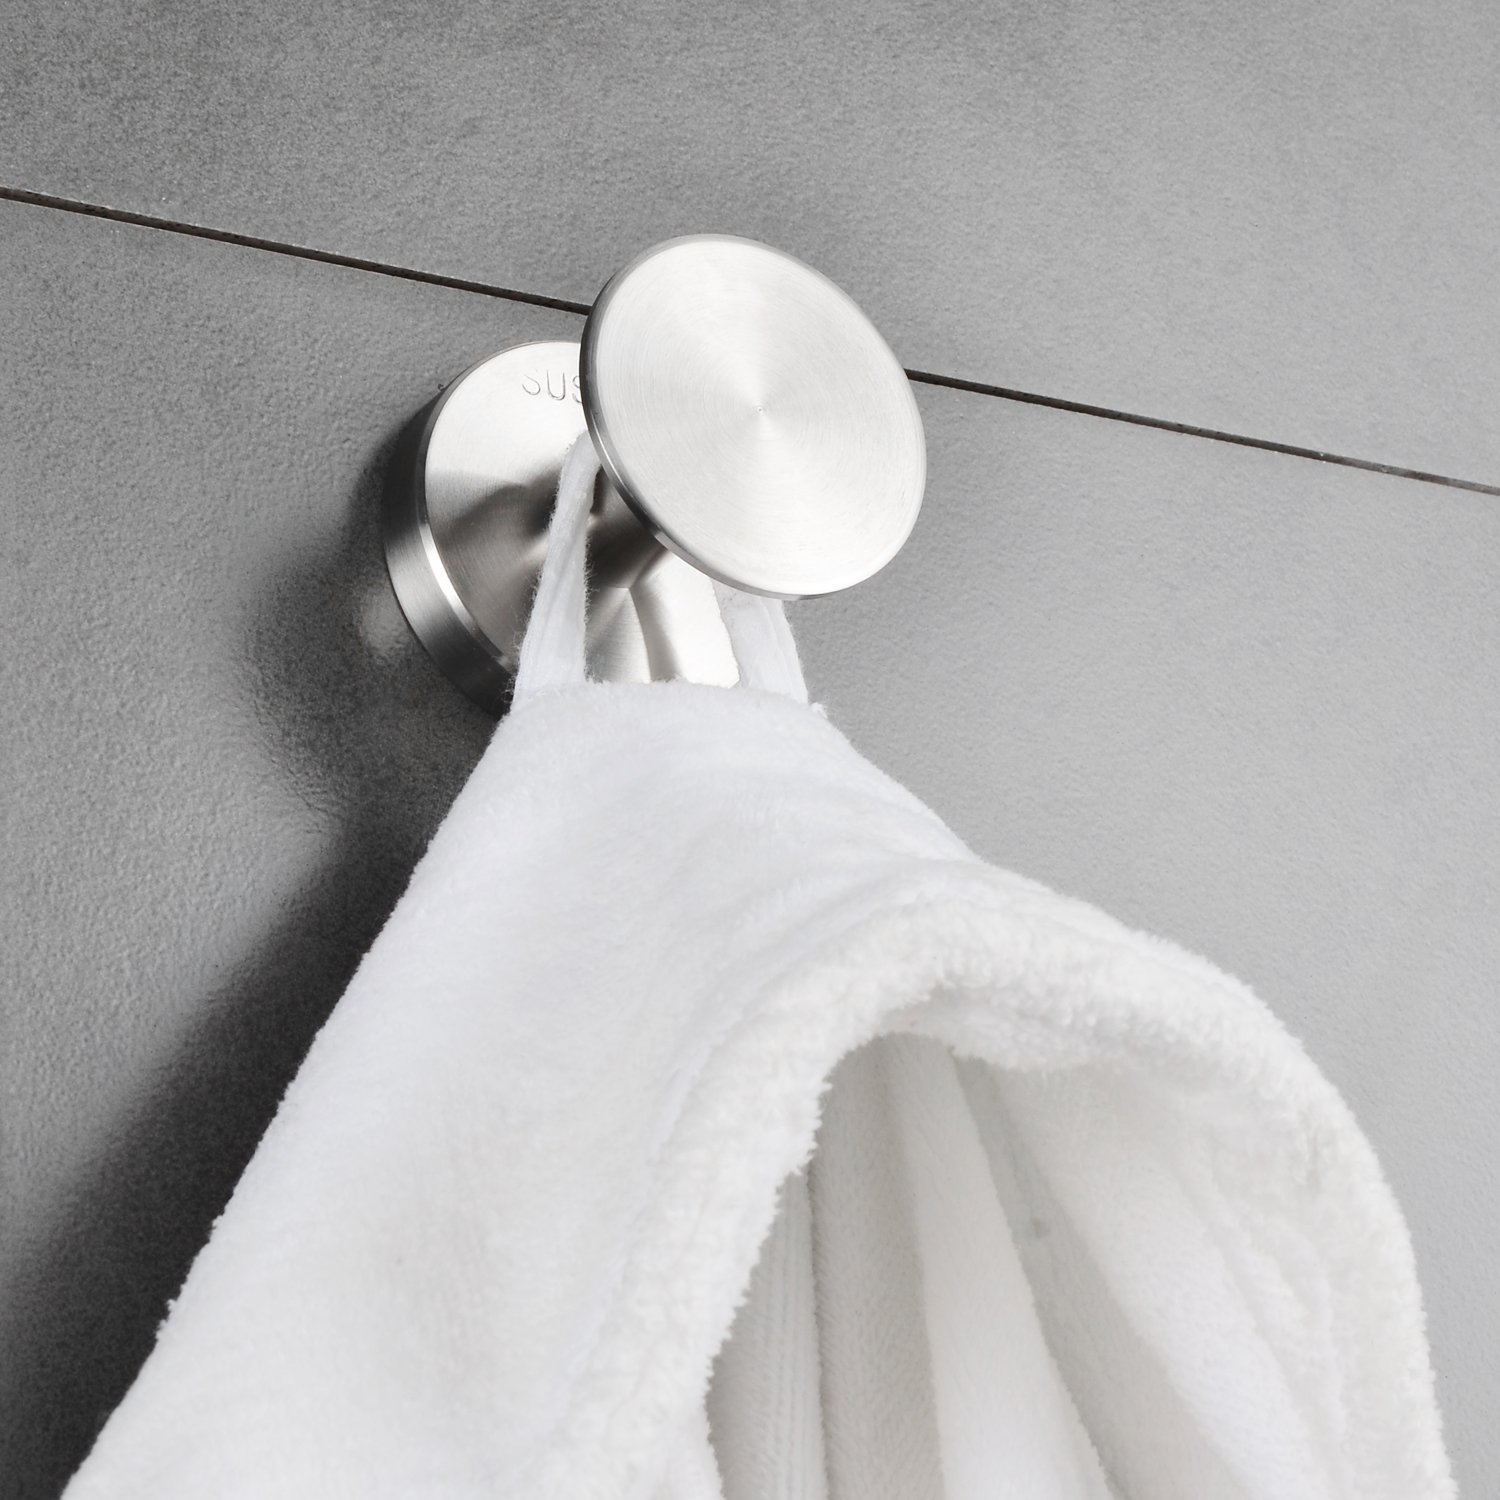 Robe Hook Large Stainless Steel Bathroom Towel Kitchen Hanger MARMOLUX ACC Wall Mount Bath Towel /& Clothes Holder with Hardware Heavy Duty Modern Polished Chrome Bonway Industry